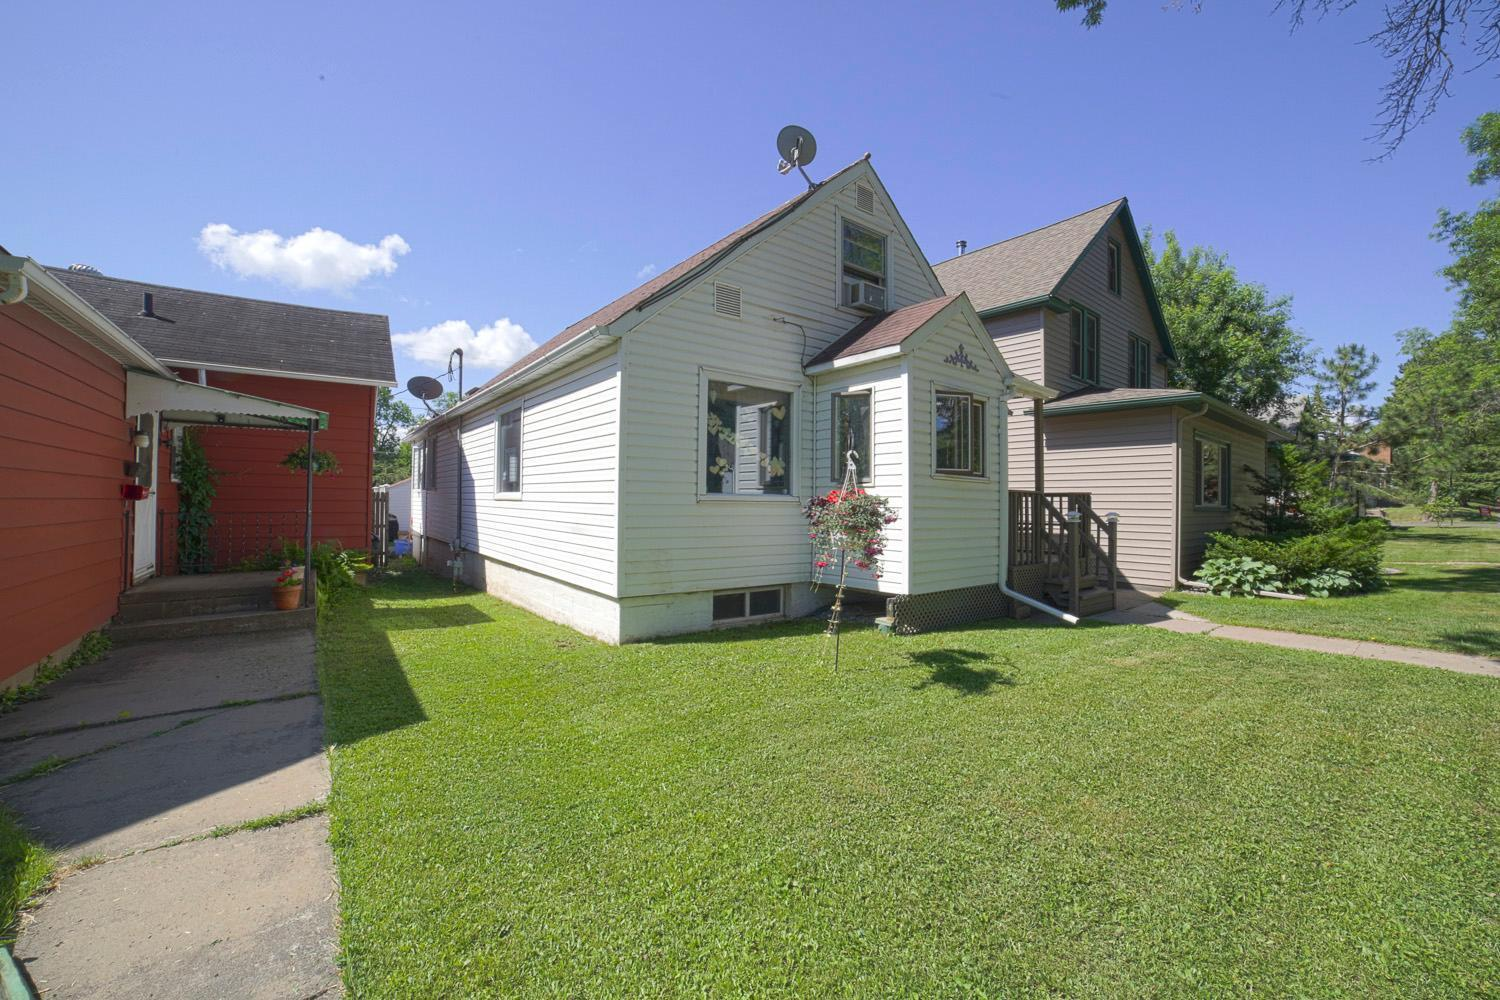 618 NE 15th Street N Property Photo - Virginia, MN real estate listing